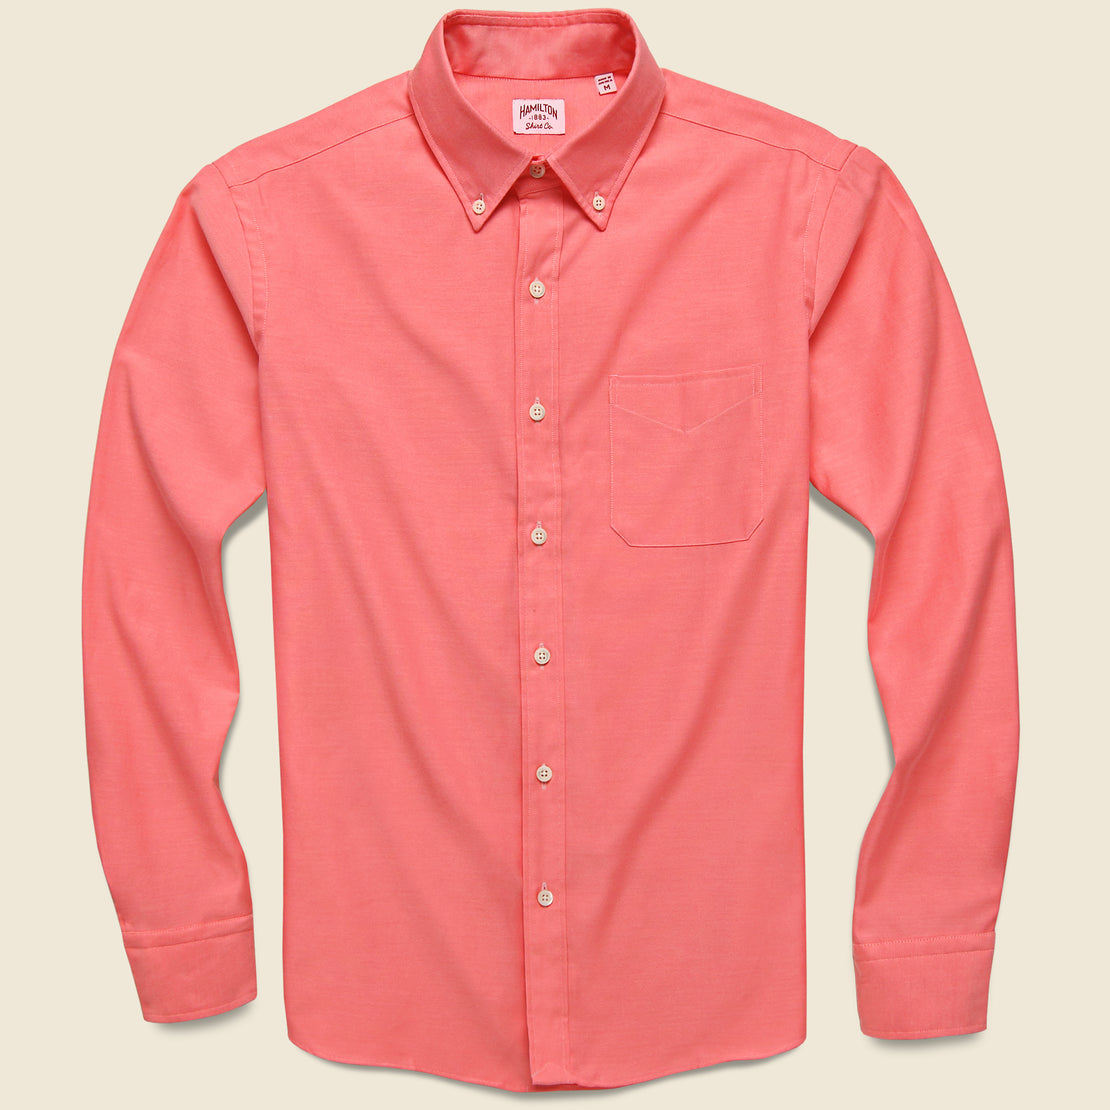 Hamilton Shirt Co. Neon Oxford Shirt - Pink